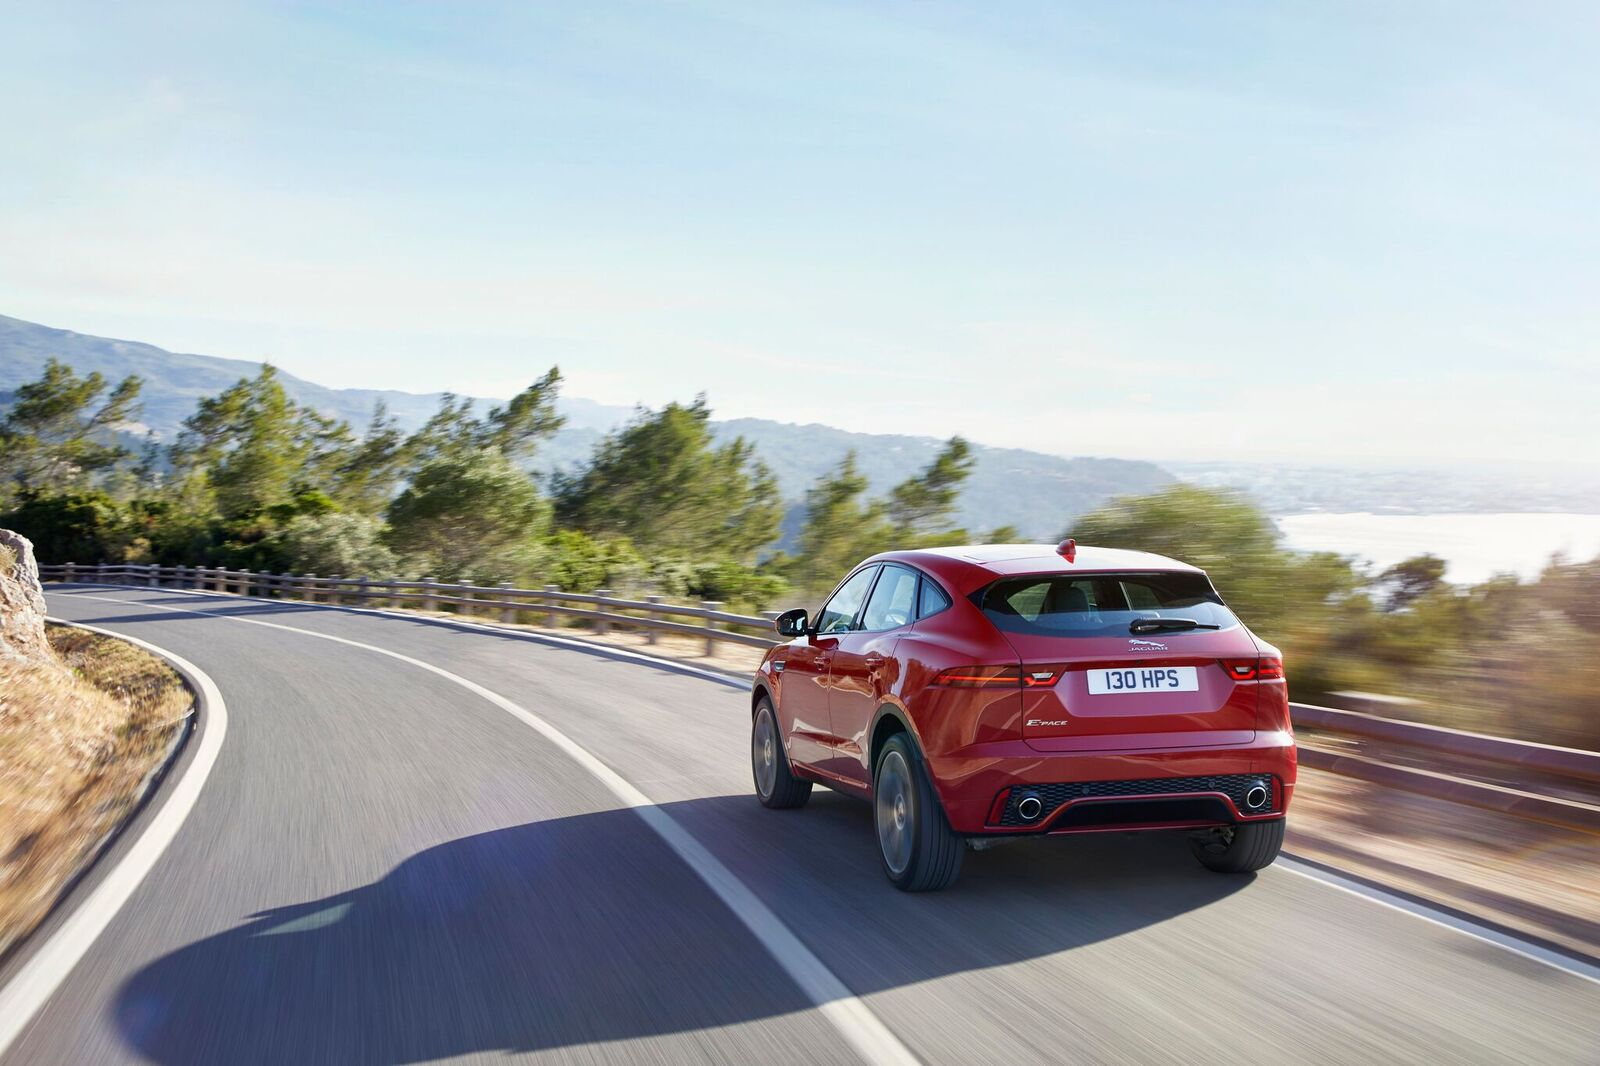 JAG EPACE 18MY Firstedition Onroaddynamic 130717 06- Jaguar E-PACE